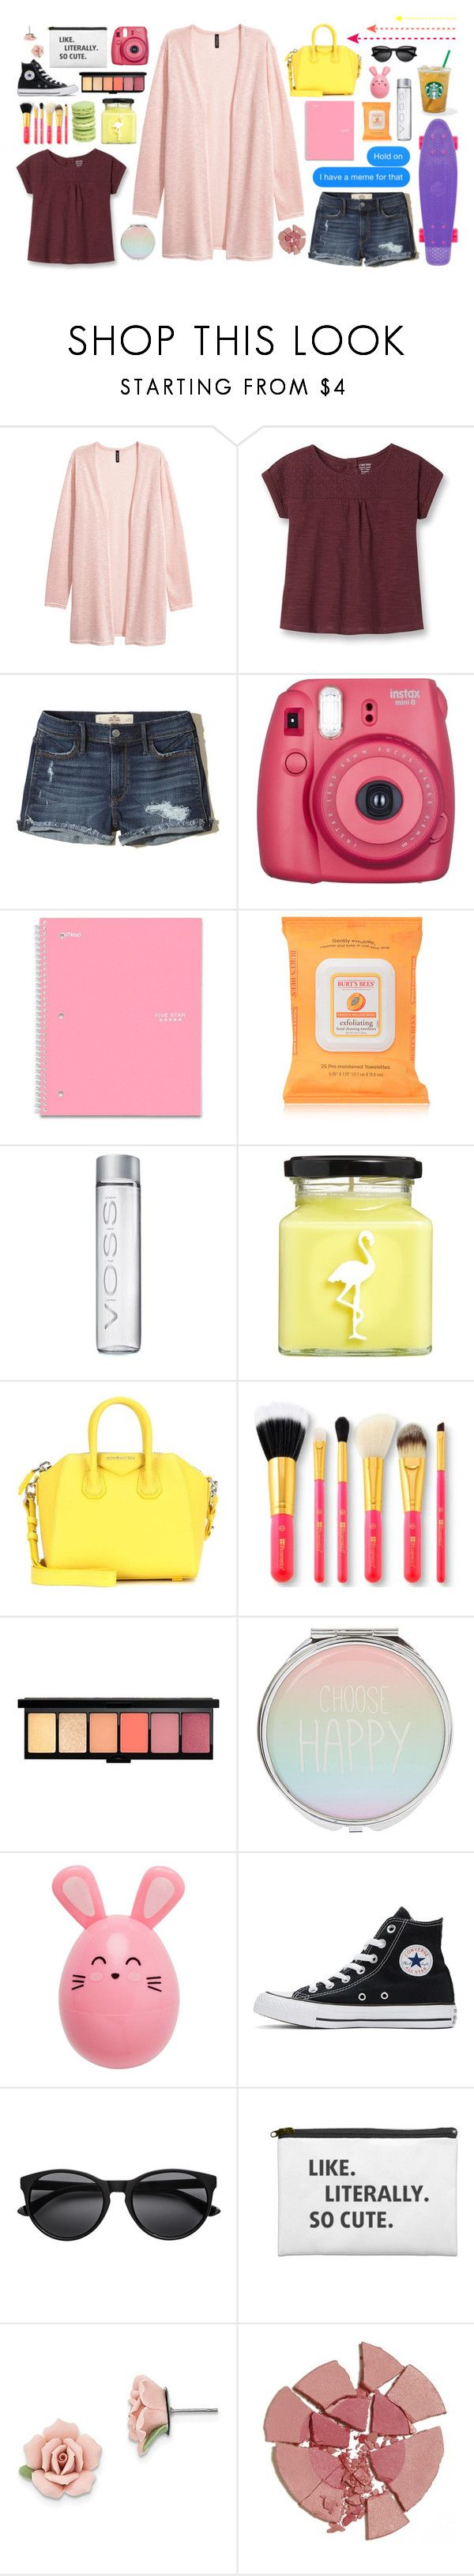 """""""Let Me Love You"""" by omgitslizzy ❤ liked on Polyvore featuring Hollister Co., Penny, Fujifilm, Five Star, Burt's Bees, Flamingo Candles, Givenchy, Converse, 1928 and Charlotte Tilbury"""